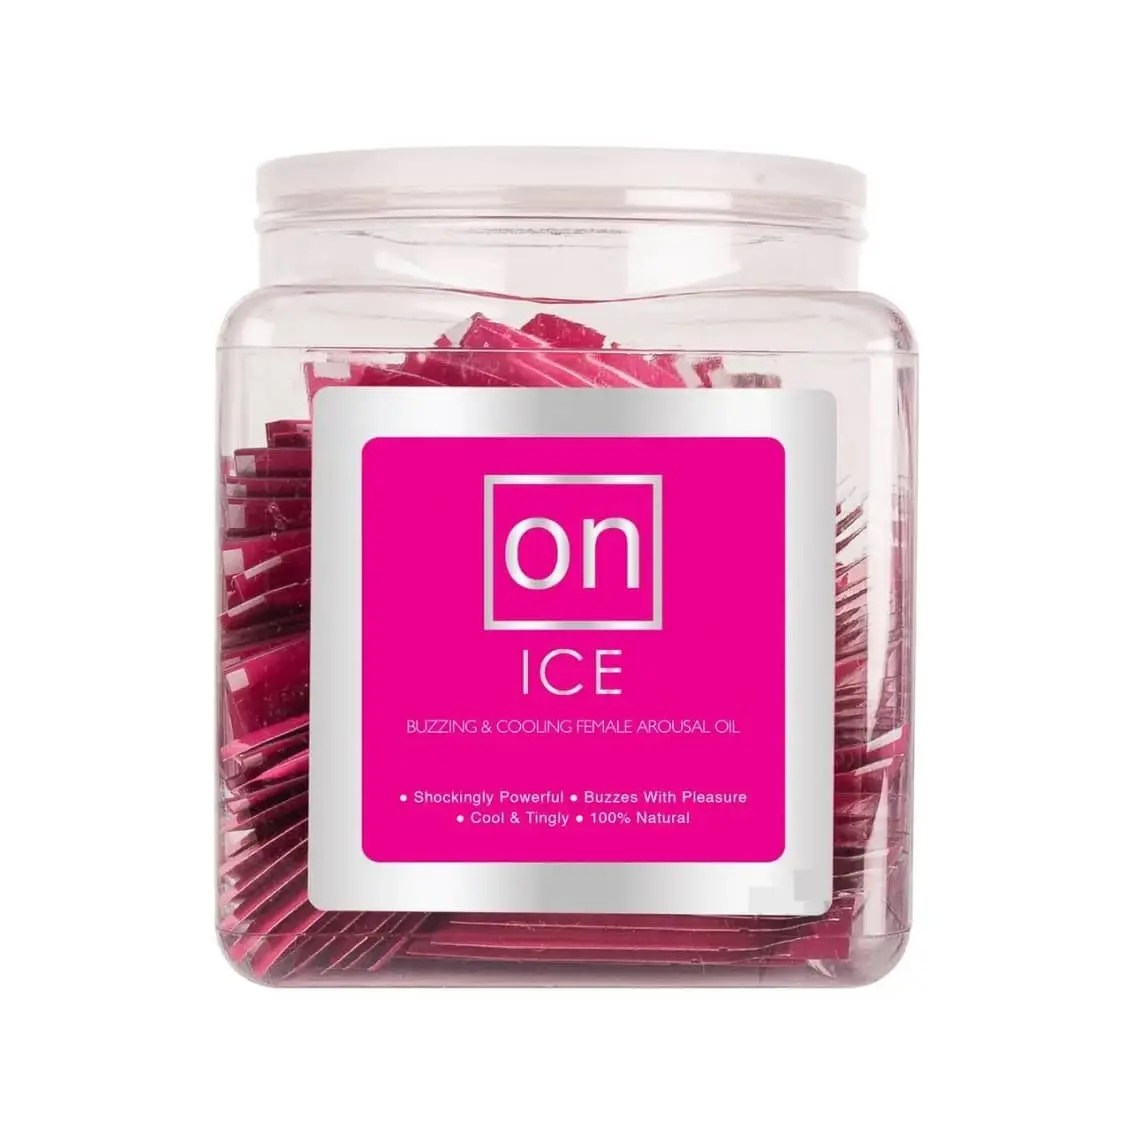 On Ice - Buzzing & Cooling Female Arousal Oil - 75 Sachets